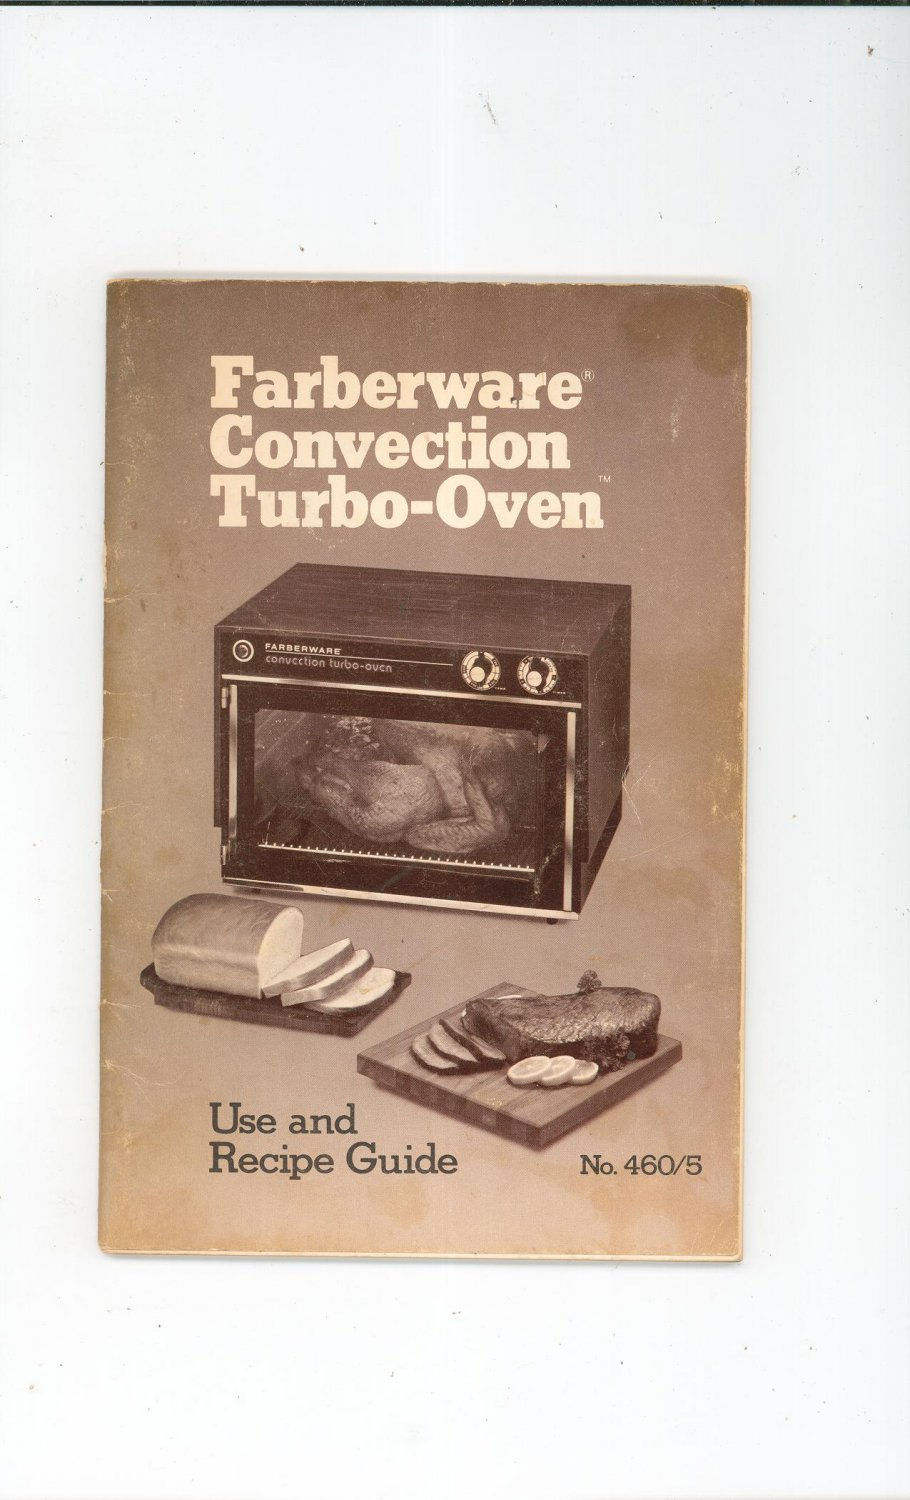 Farberware Convection Turbo Oven Model 460/5 Owners Manual & Cookbook